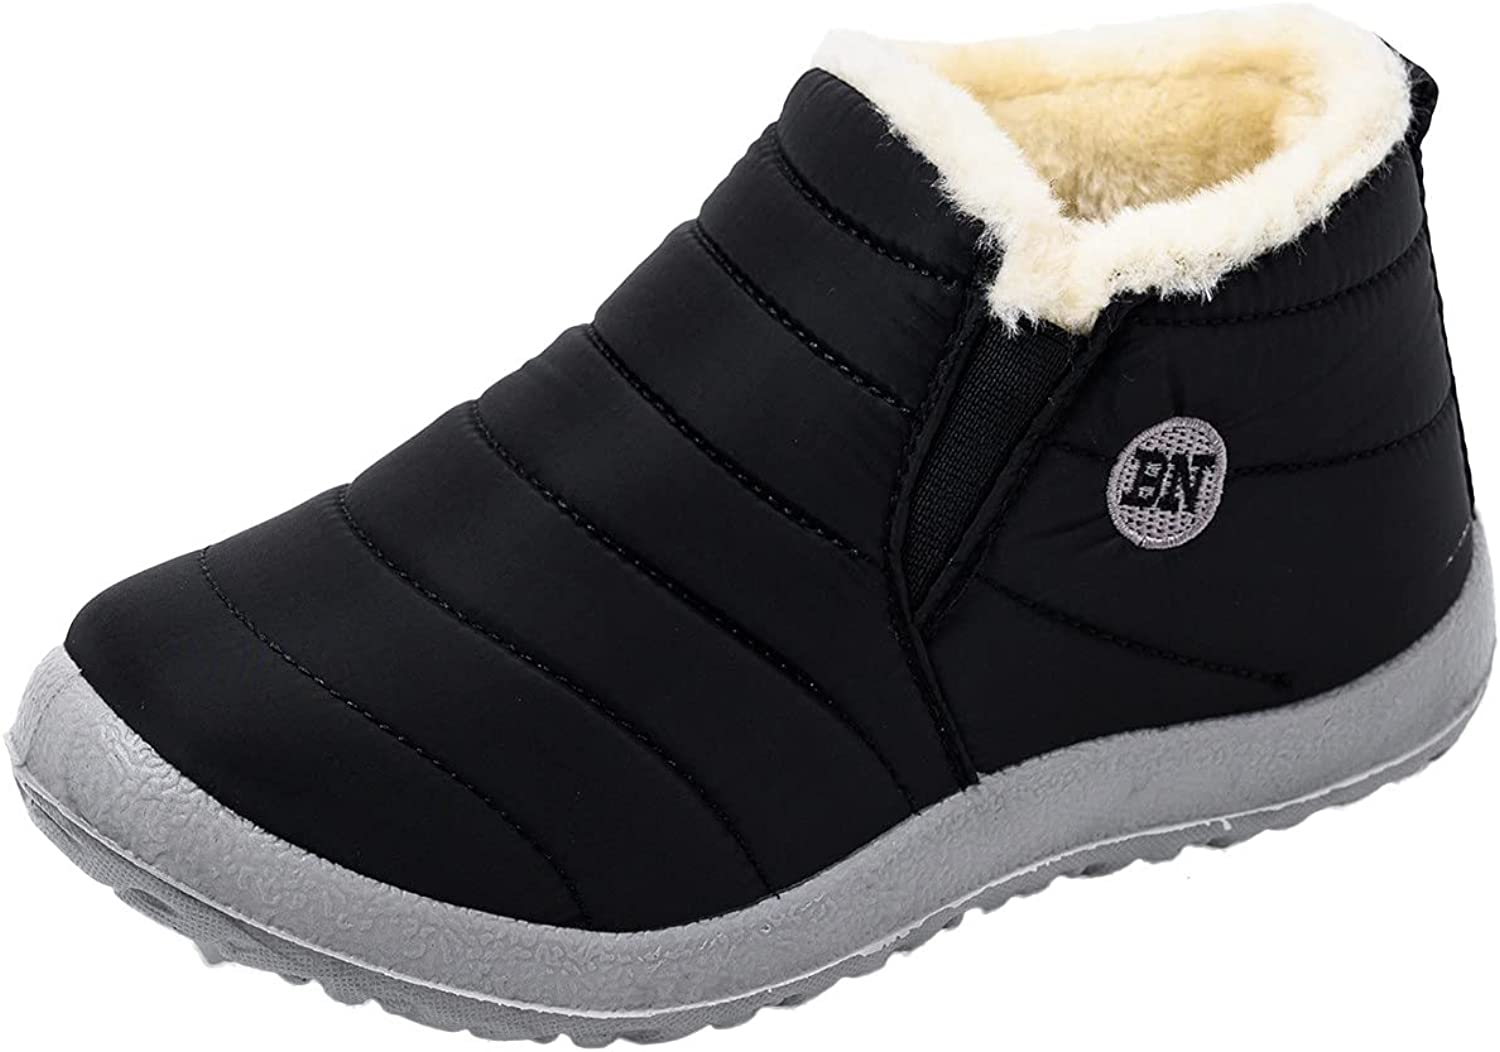 Boots For Women With Heel Ankle Boots for Women Low Heel, Warm Snow Boots Womens Fur Lined Booties Ladies Winter Ankle Boots Waterproof Anti-Slip Outdoor Winter Shoe Flat Sneakers